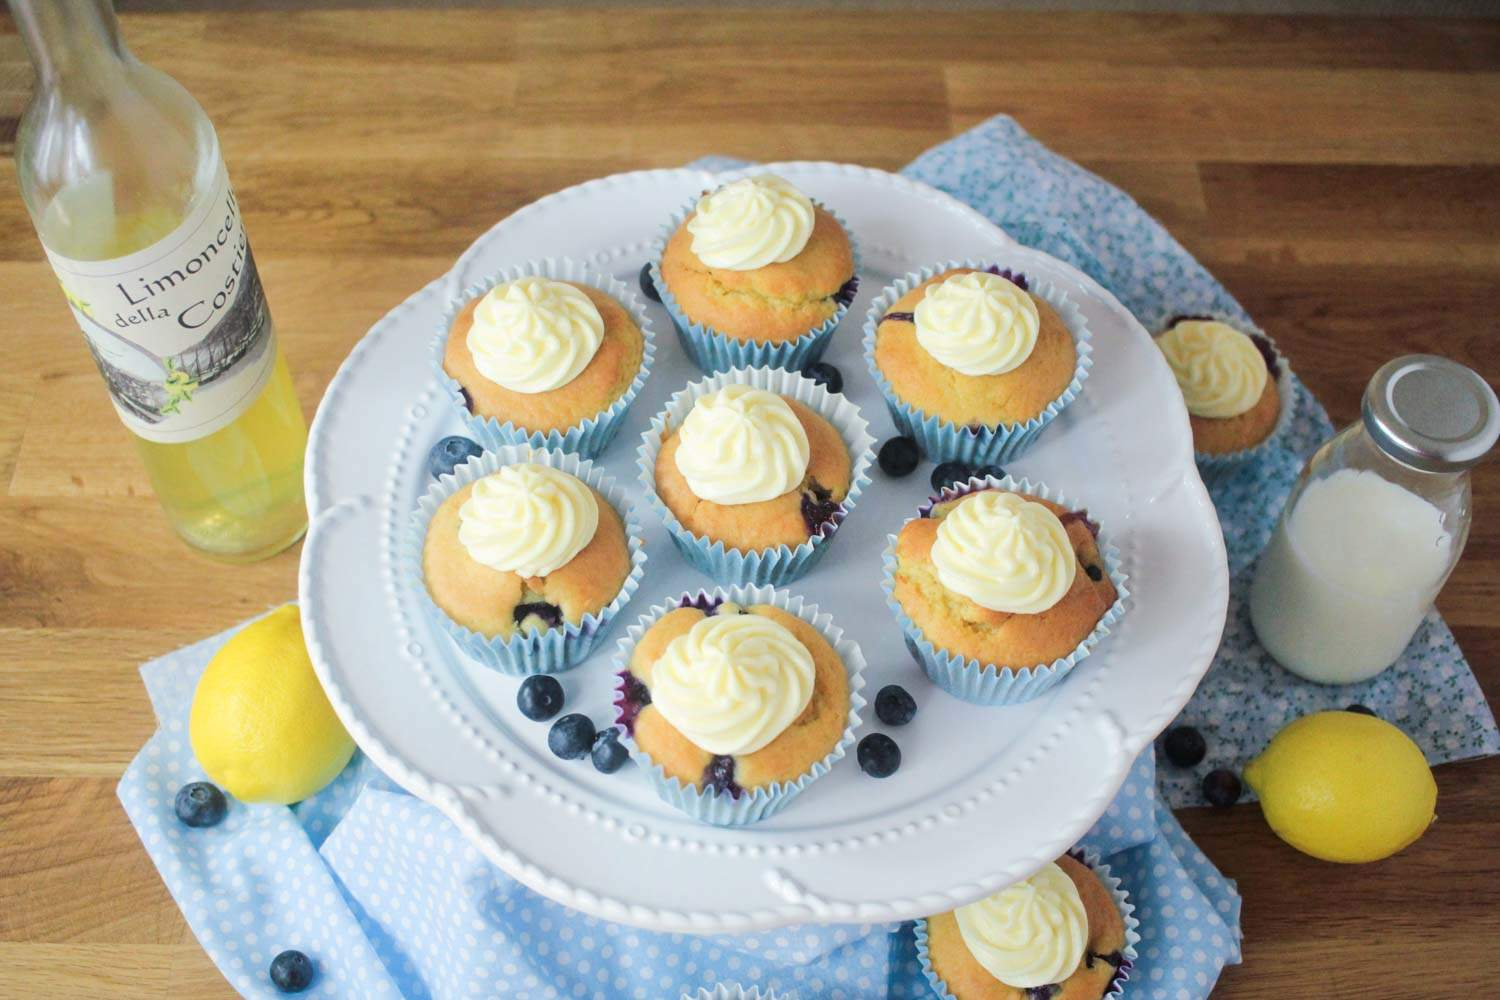 Blueberry and Lemon Muffins with a Limoncello Frosting-3 - Globe Scoffers | globescoffers.com